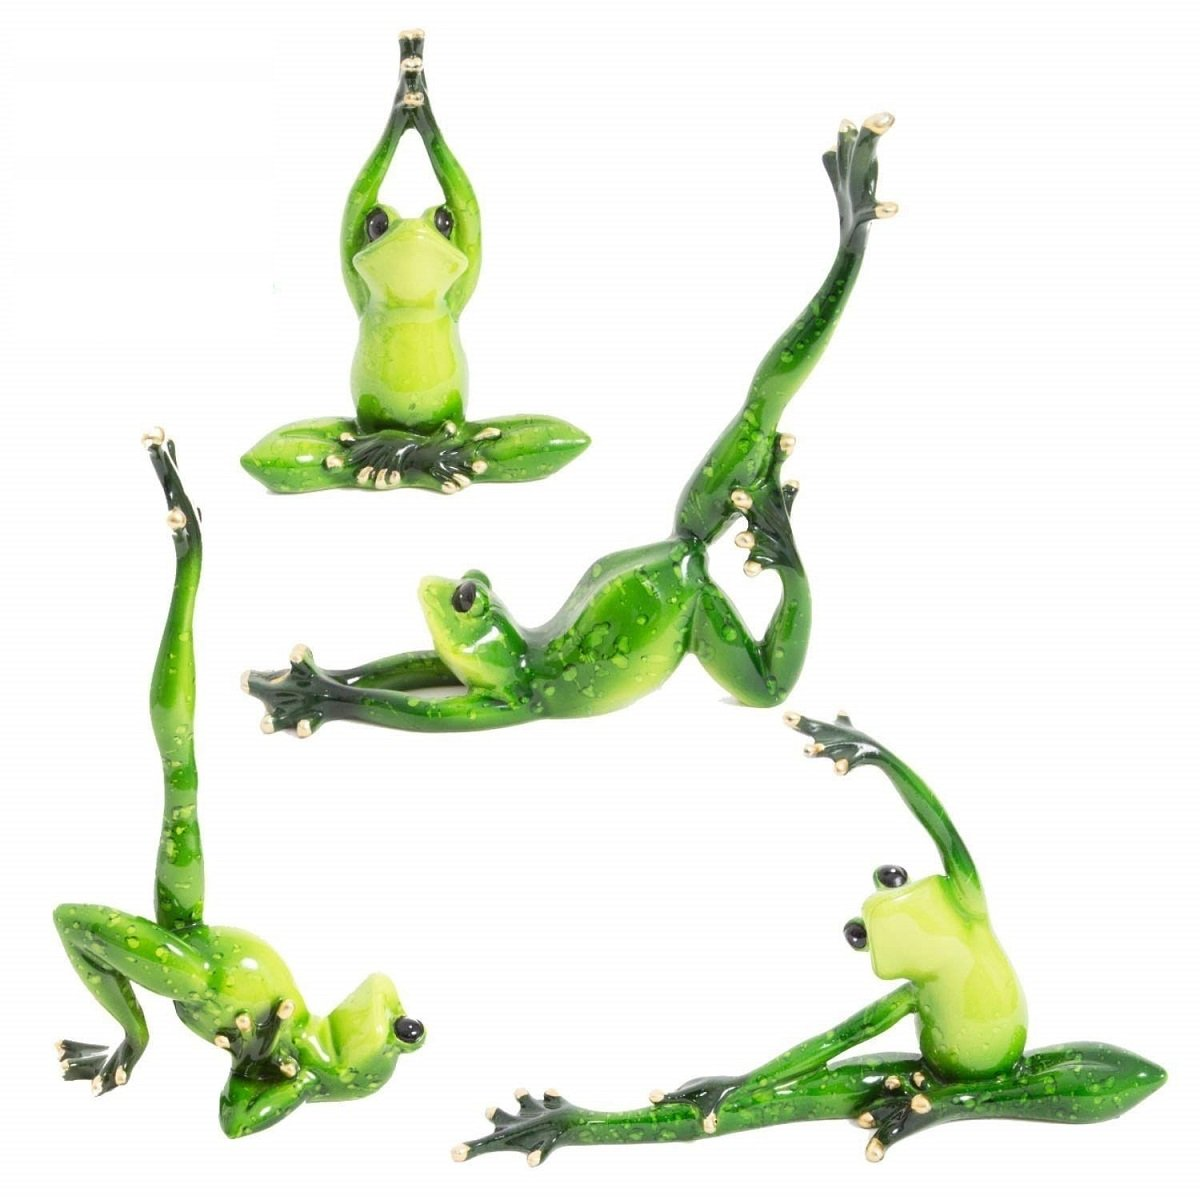 3D Creative Yoga Frog Statues,Adorable Frog Figurines and Sculptures for Home Decor Frog Figurines 4packs Set